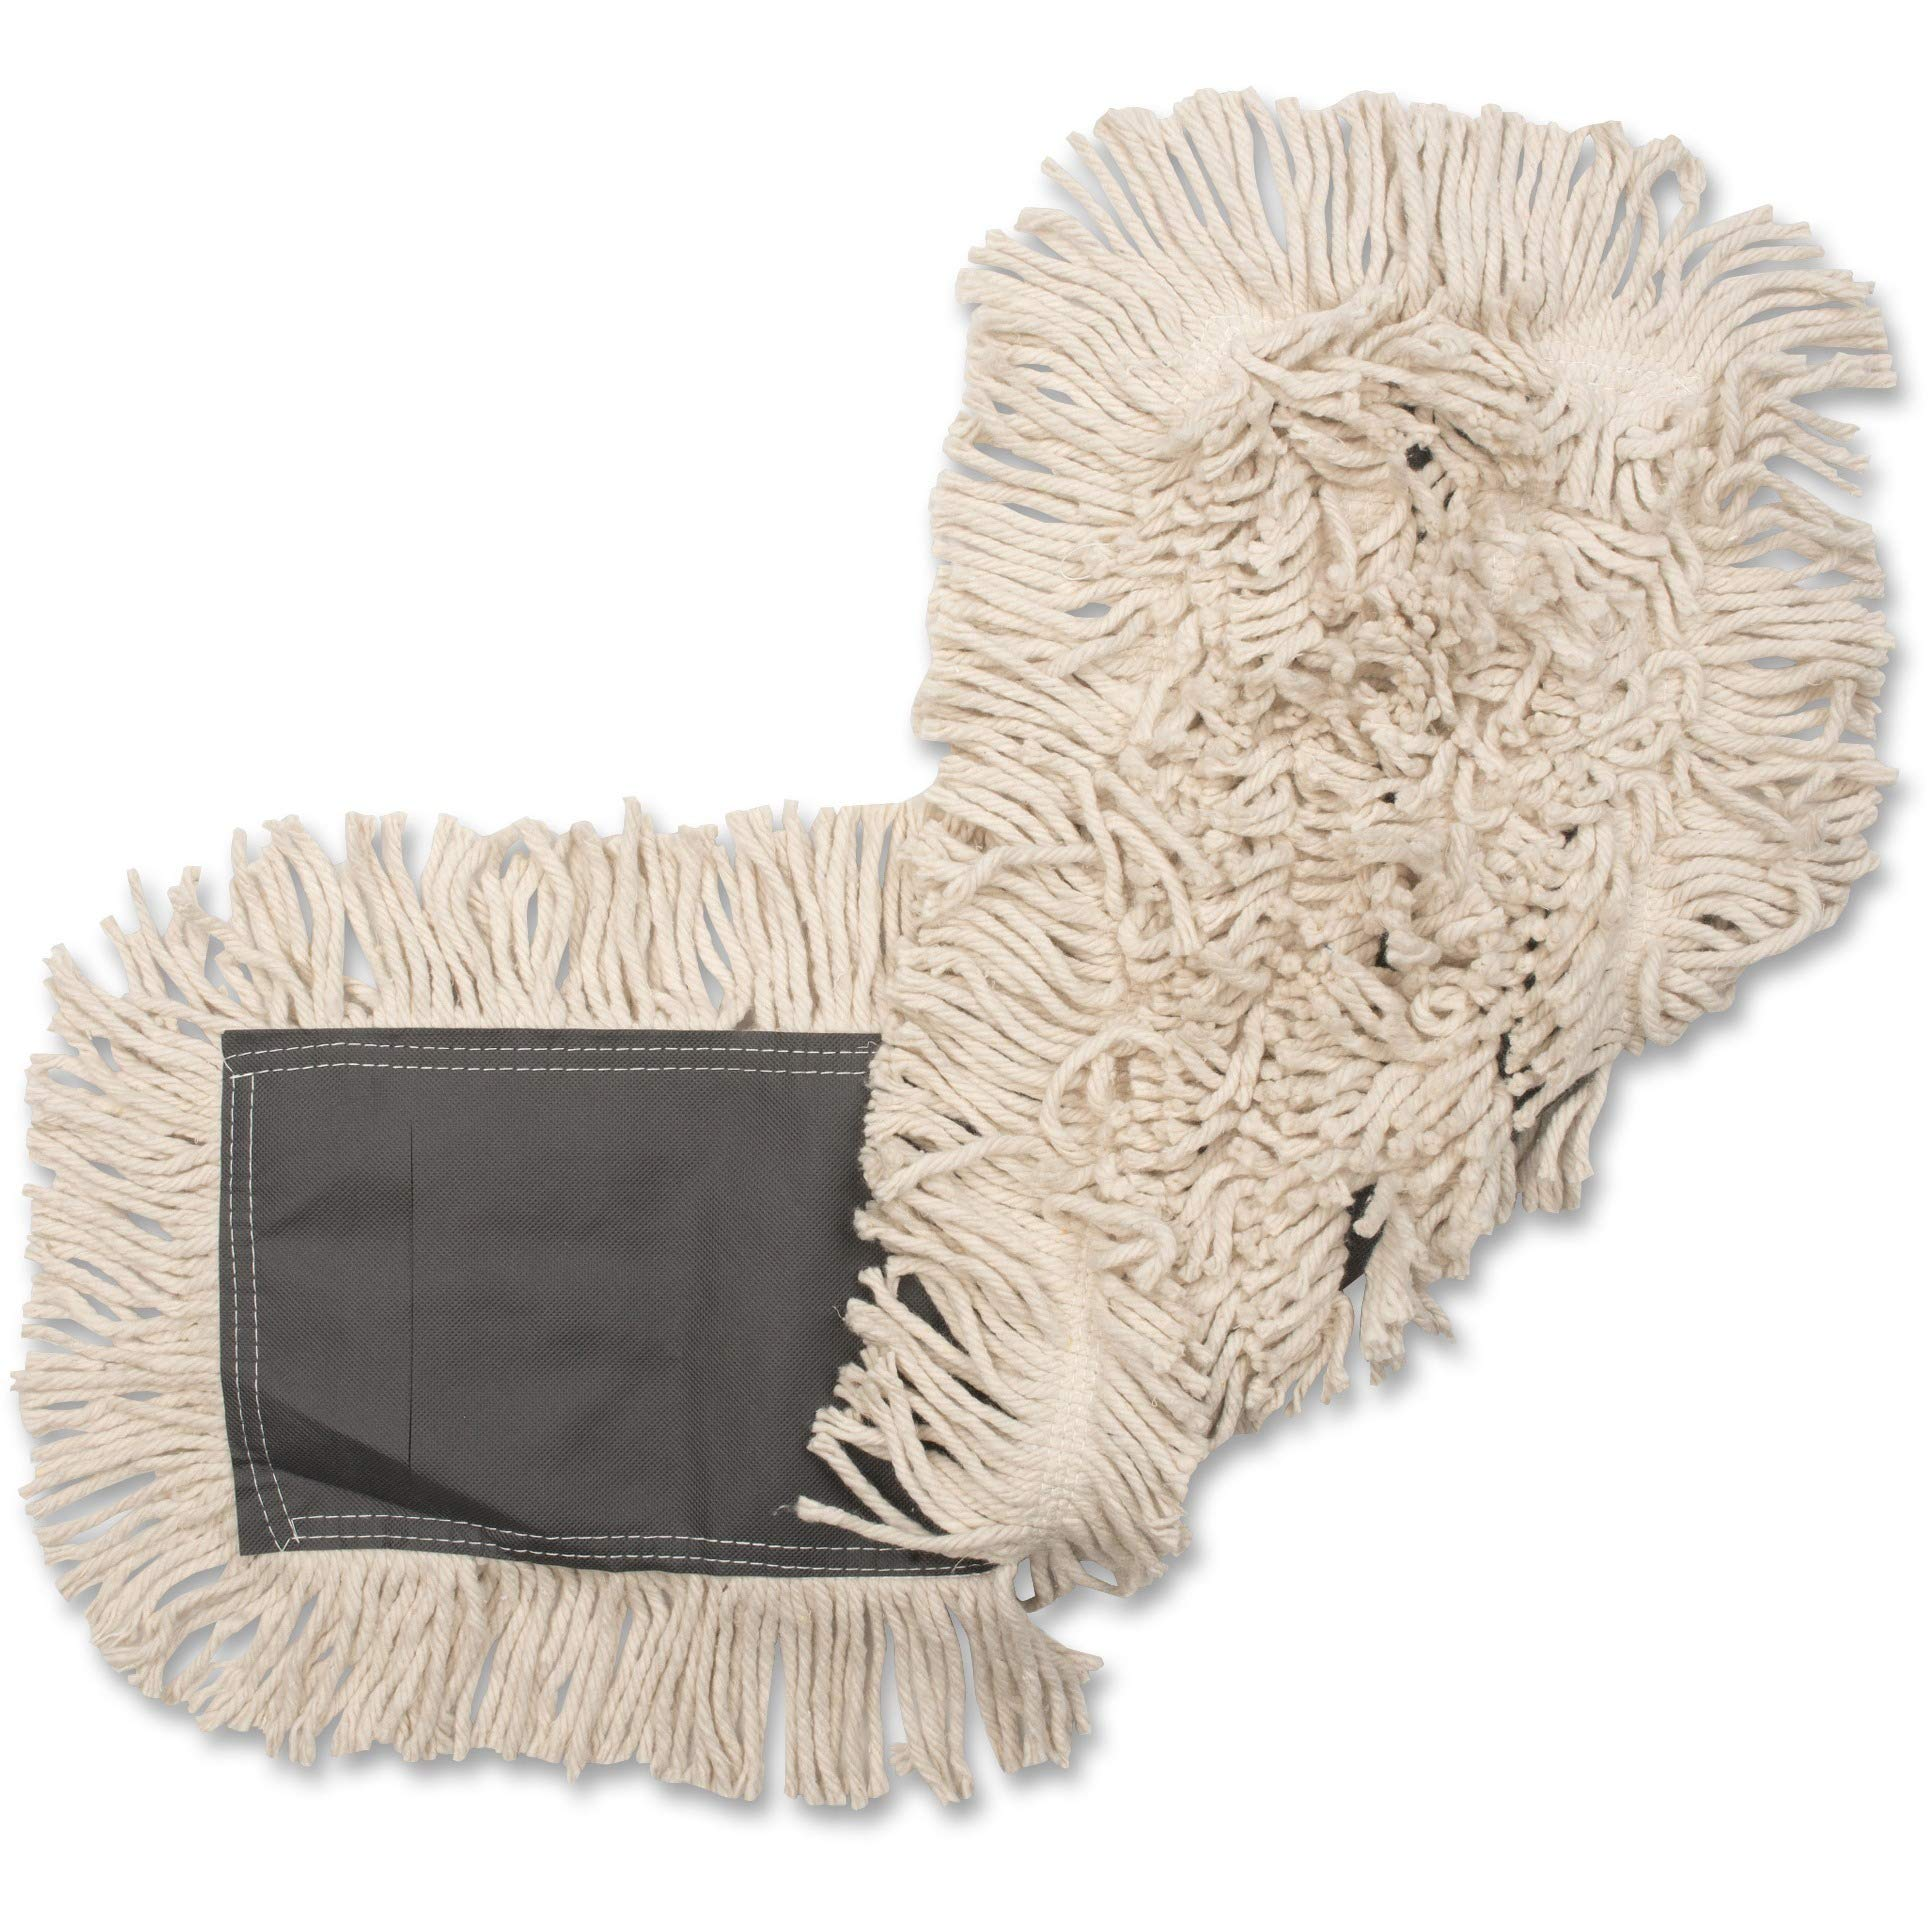 Genuine Joe GJO00185CT Disposable Cotton Dustmop, 18''X25'', 12Ea/Ct, Natural (Pack of 12)